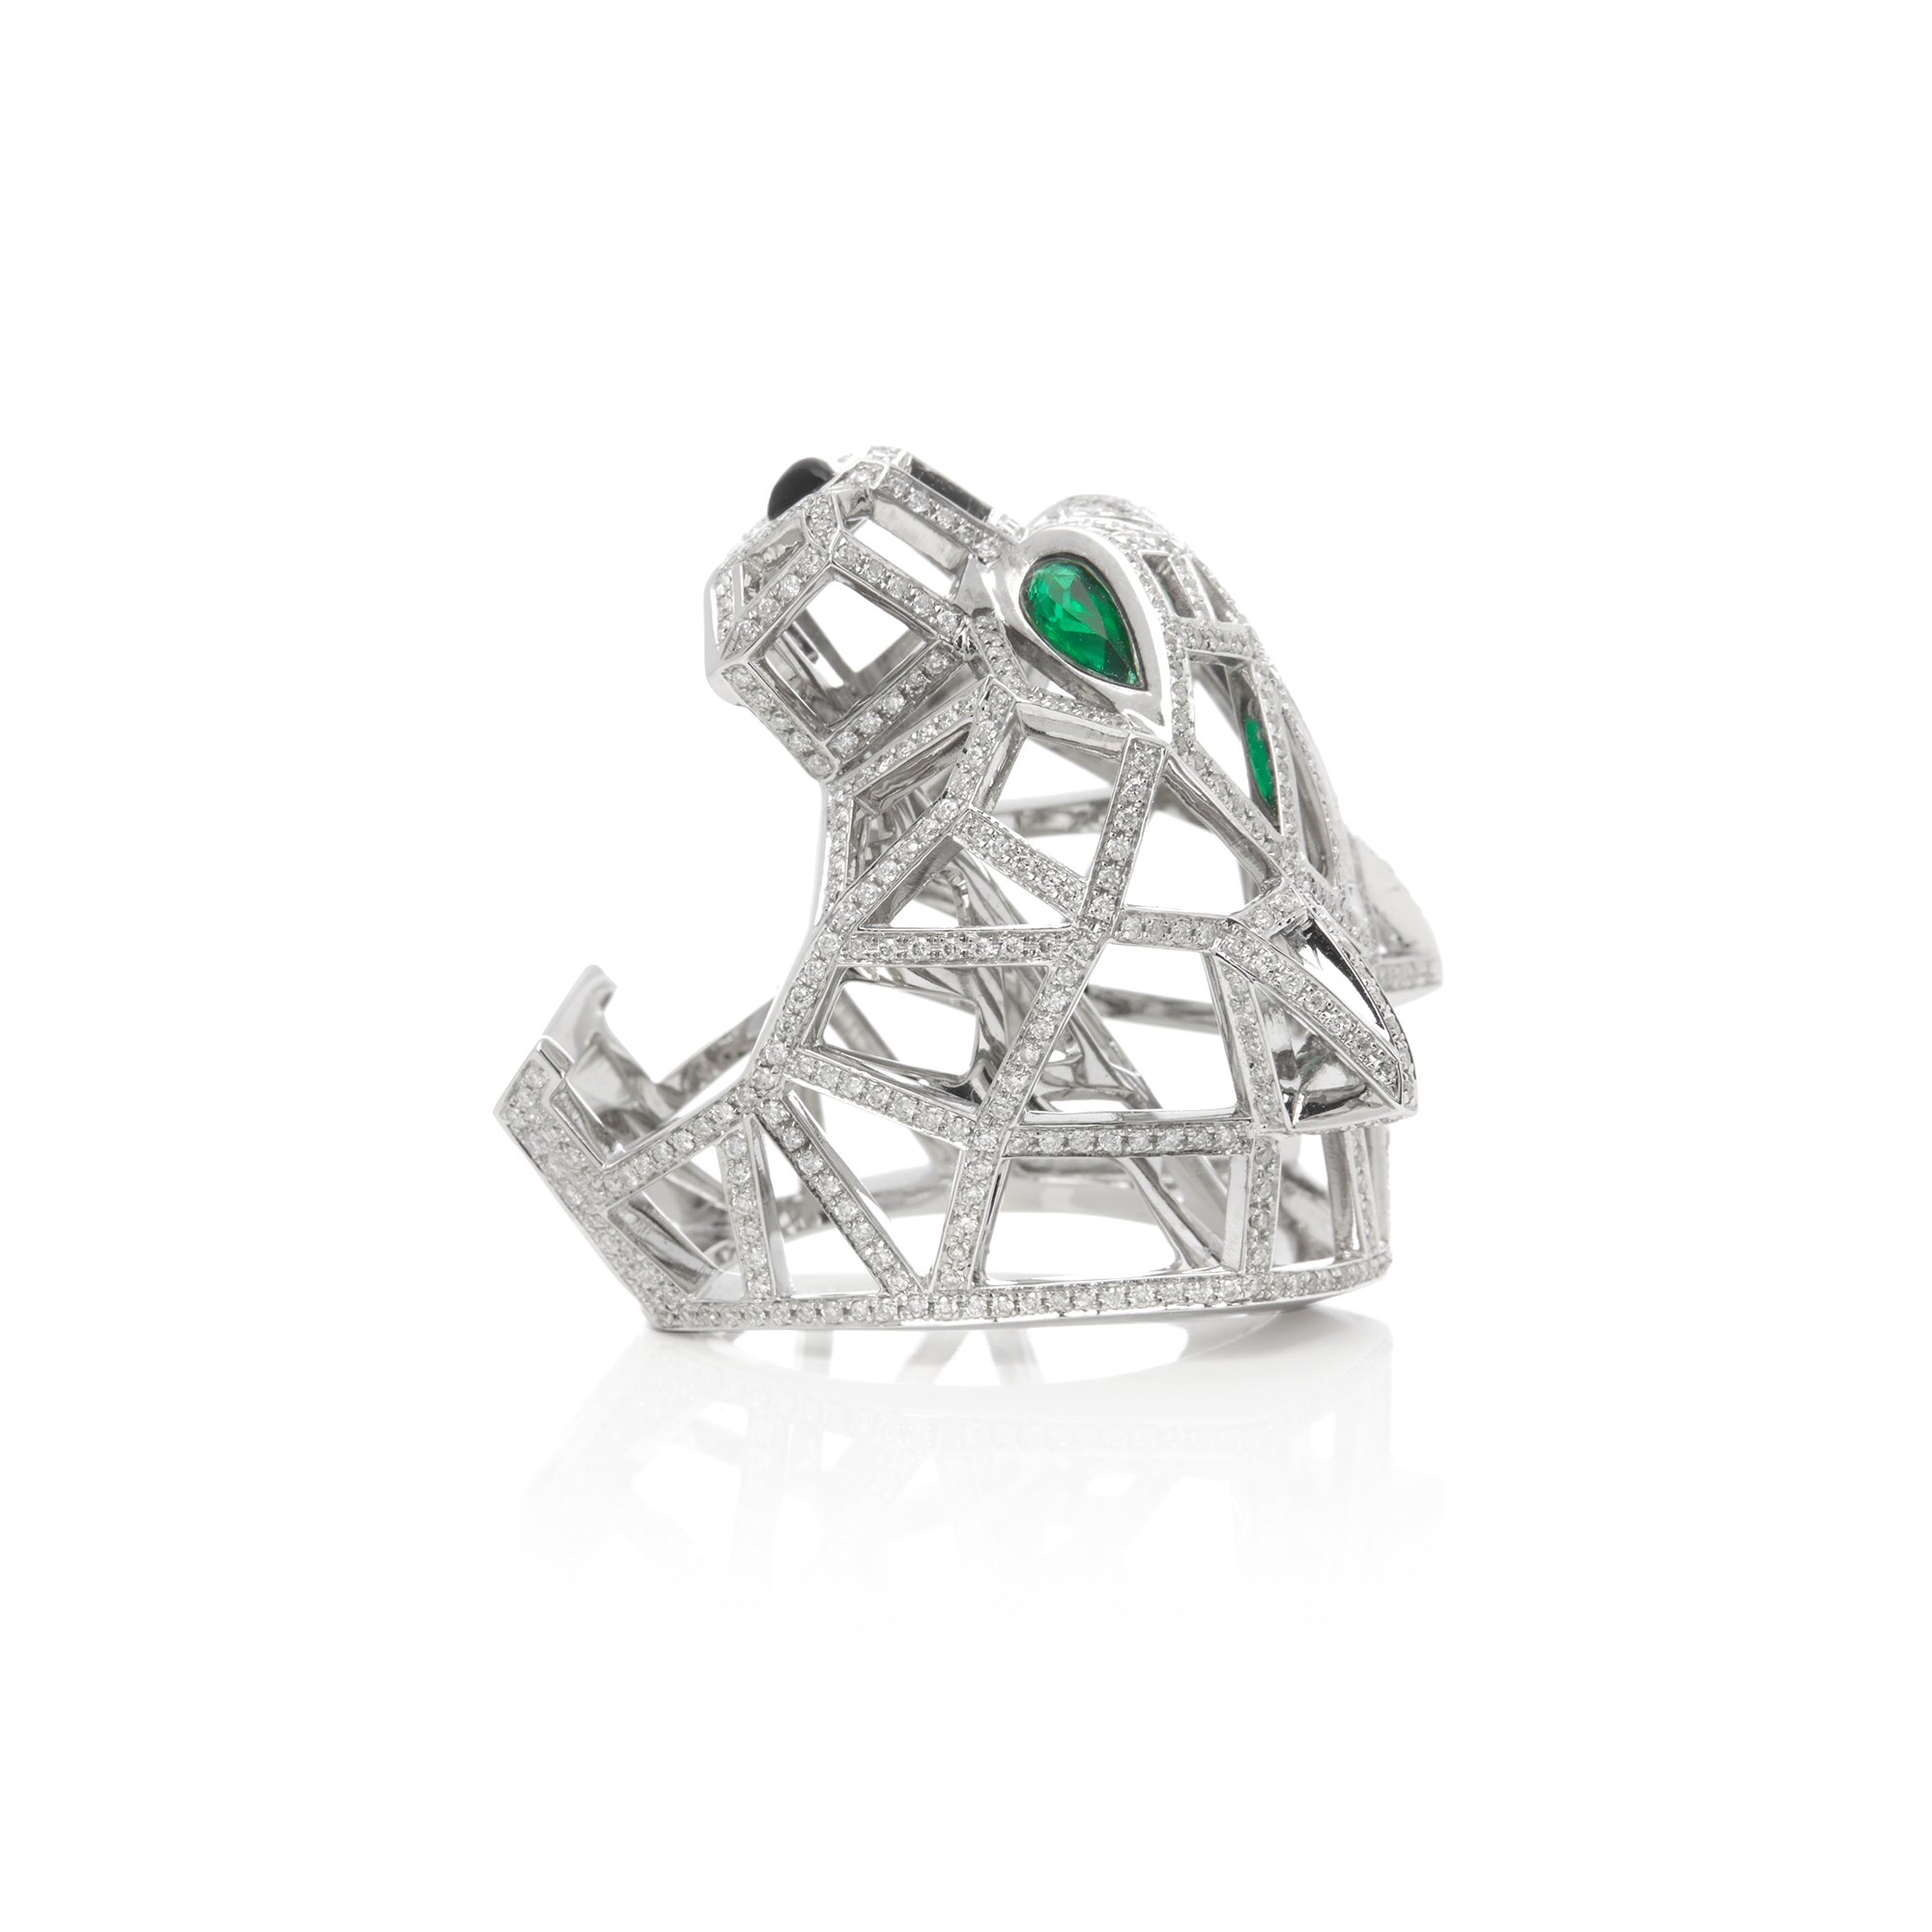 Cartier 18k White Gold Diamond, Emerald & Onyx Ring In The Style Of Cartier